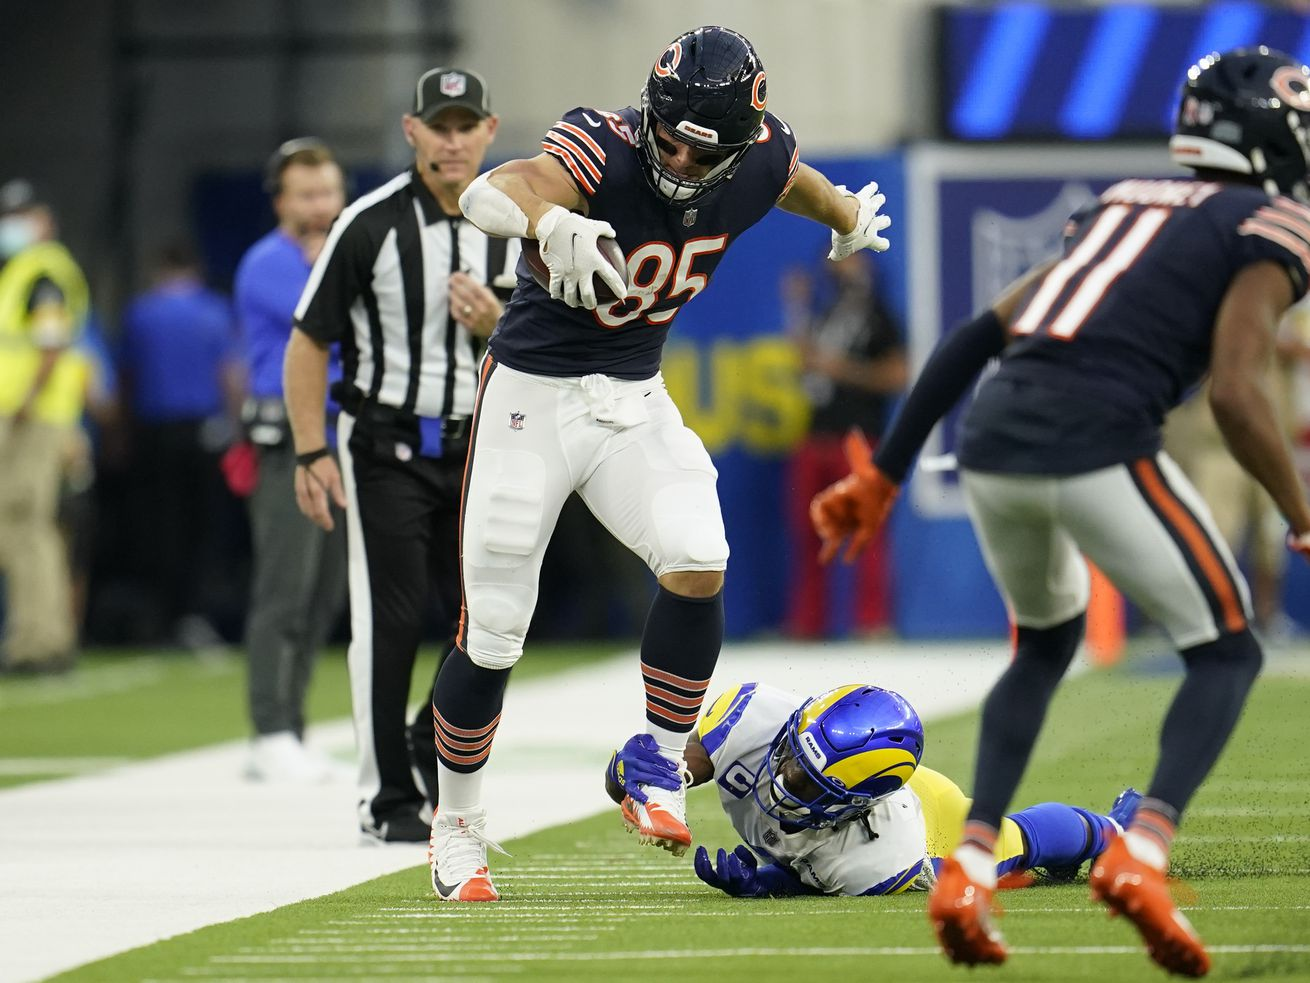 Bears tight end Cole Kmet struggles for extra yardage on a third-down reception against the Rams. It set up a fourth-and-15 play that the Bears failed to convert in a 34-14 loss at SoFi Stadium in Inglewood, Calif.